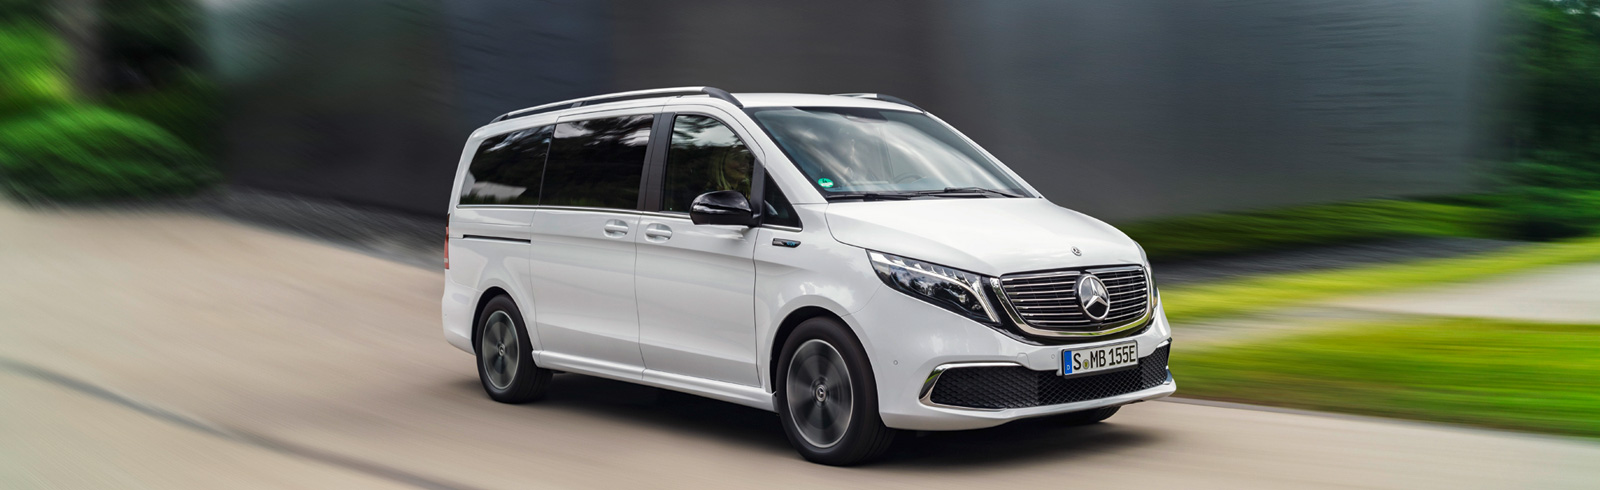 The all-electric Mercedes-Benz EQV - UK prices and specifications